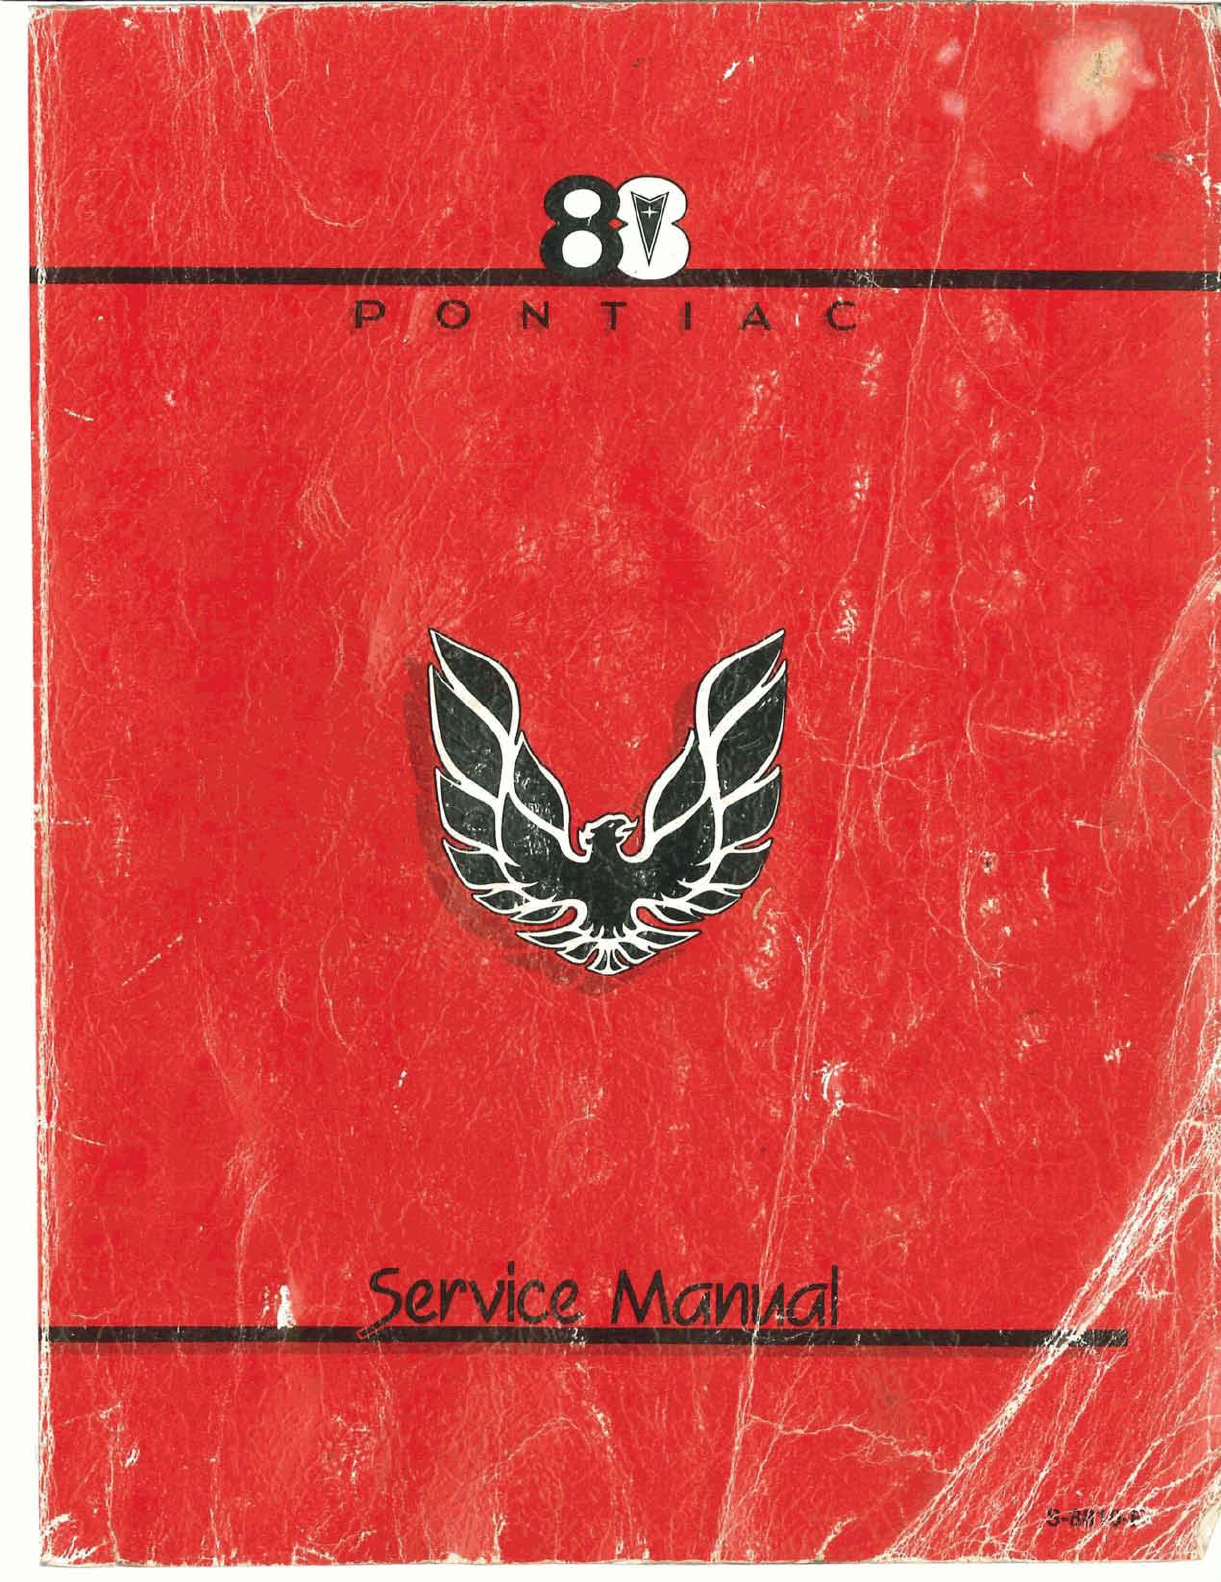 See our other Pontiac Firebird Manuals: